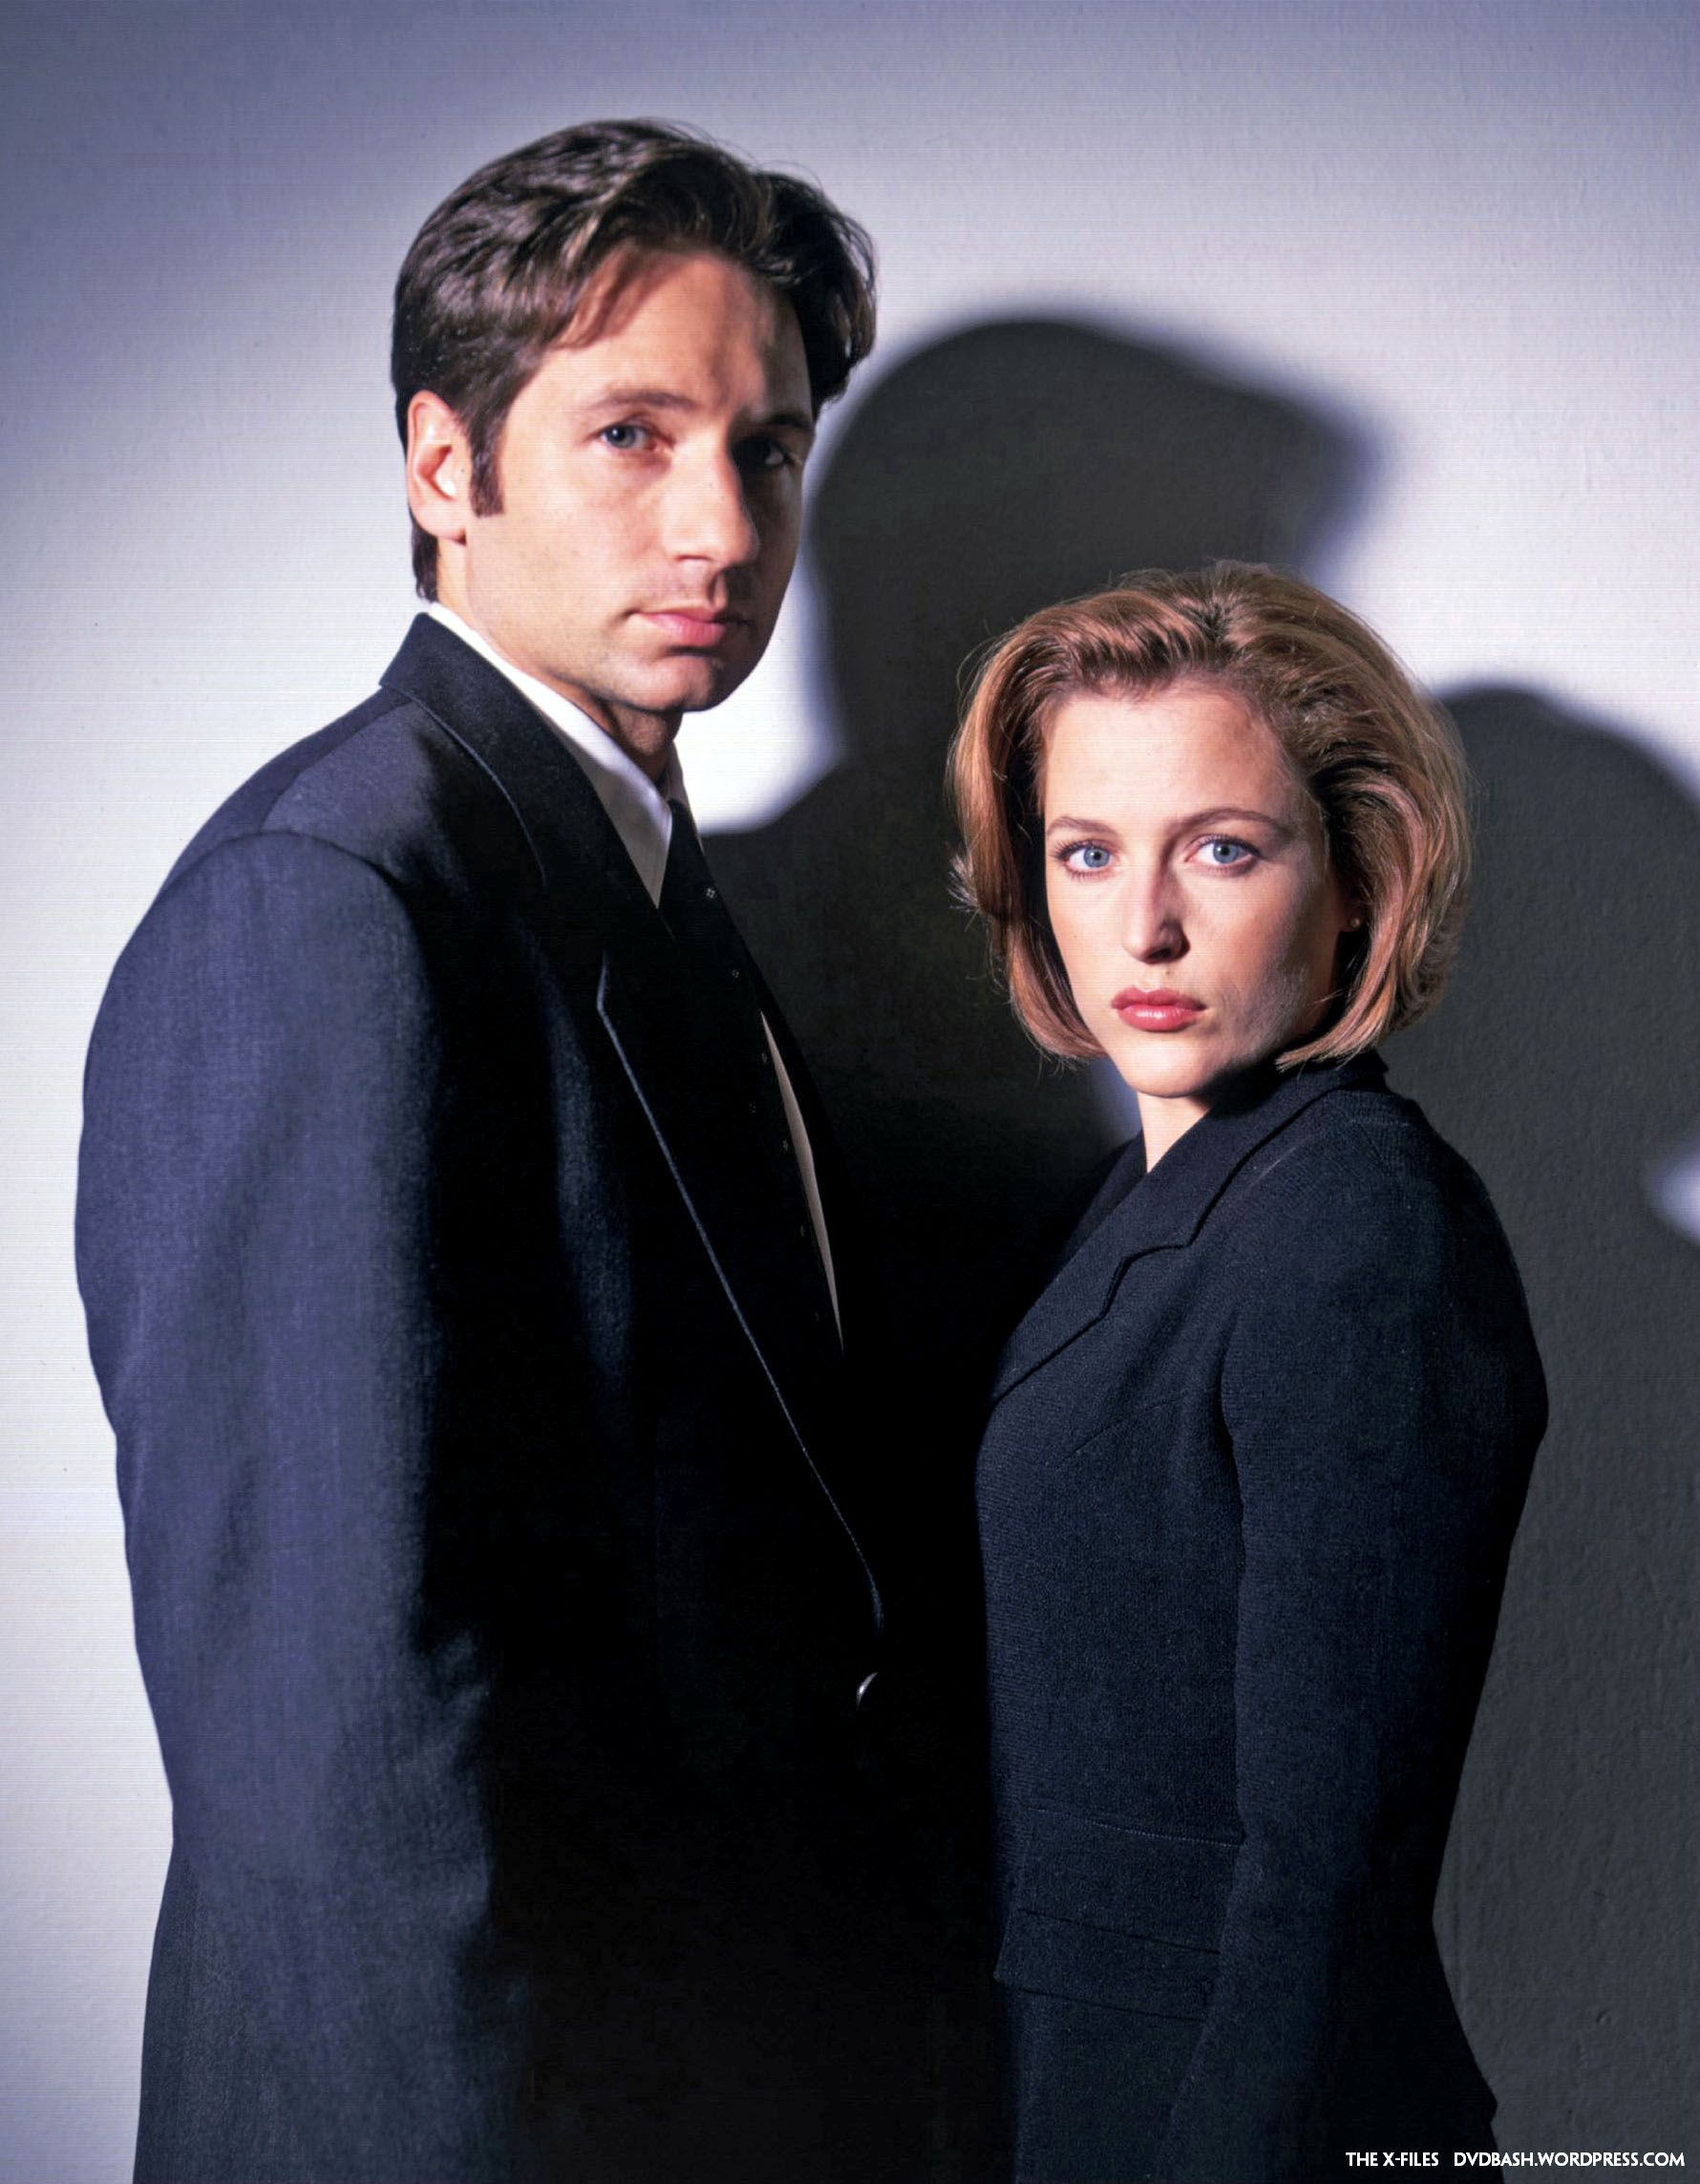 Le miglior serie tv: X Files